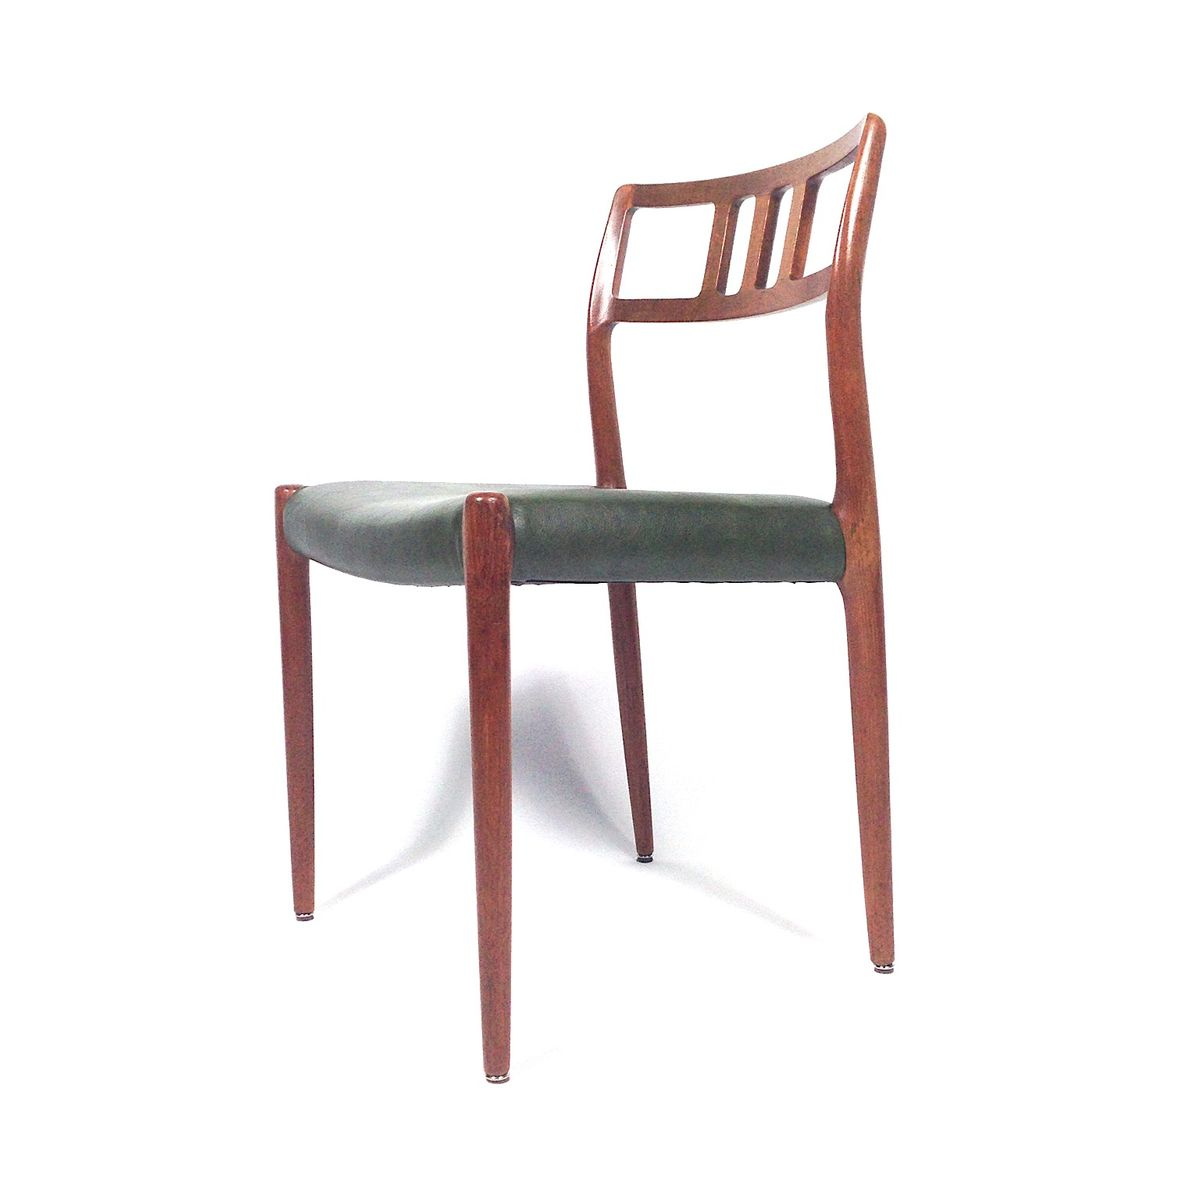 Model 79 Dining Chairs By Niels Otto Moller For JL Moller Mobelfabrik Set Of